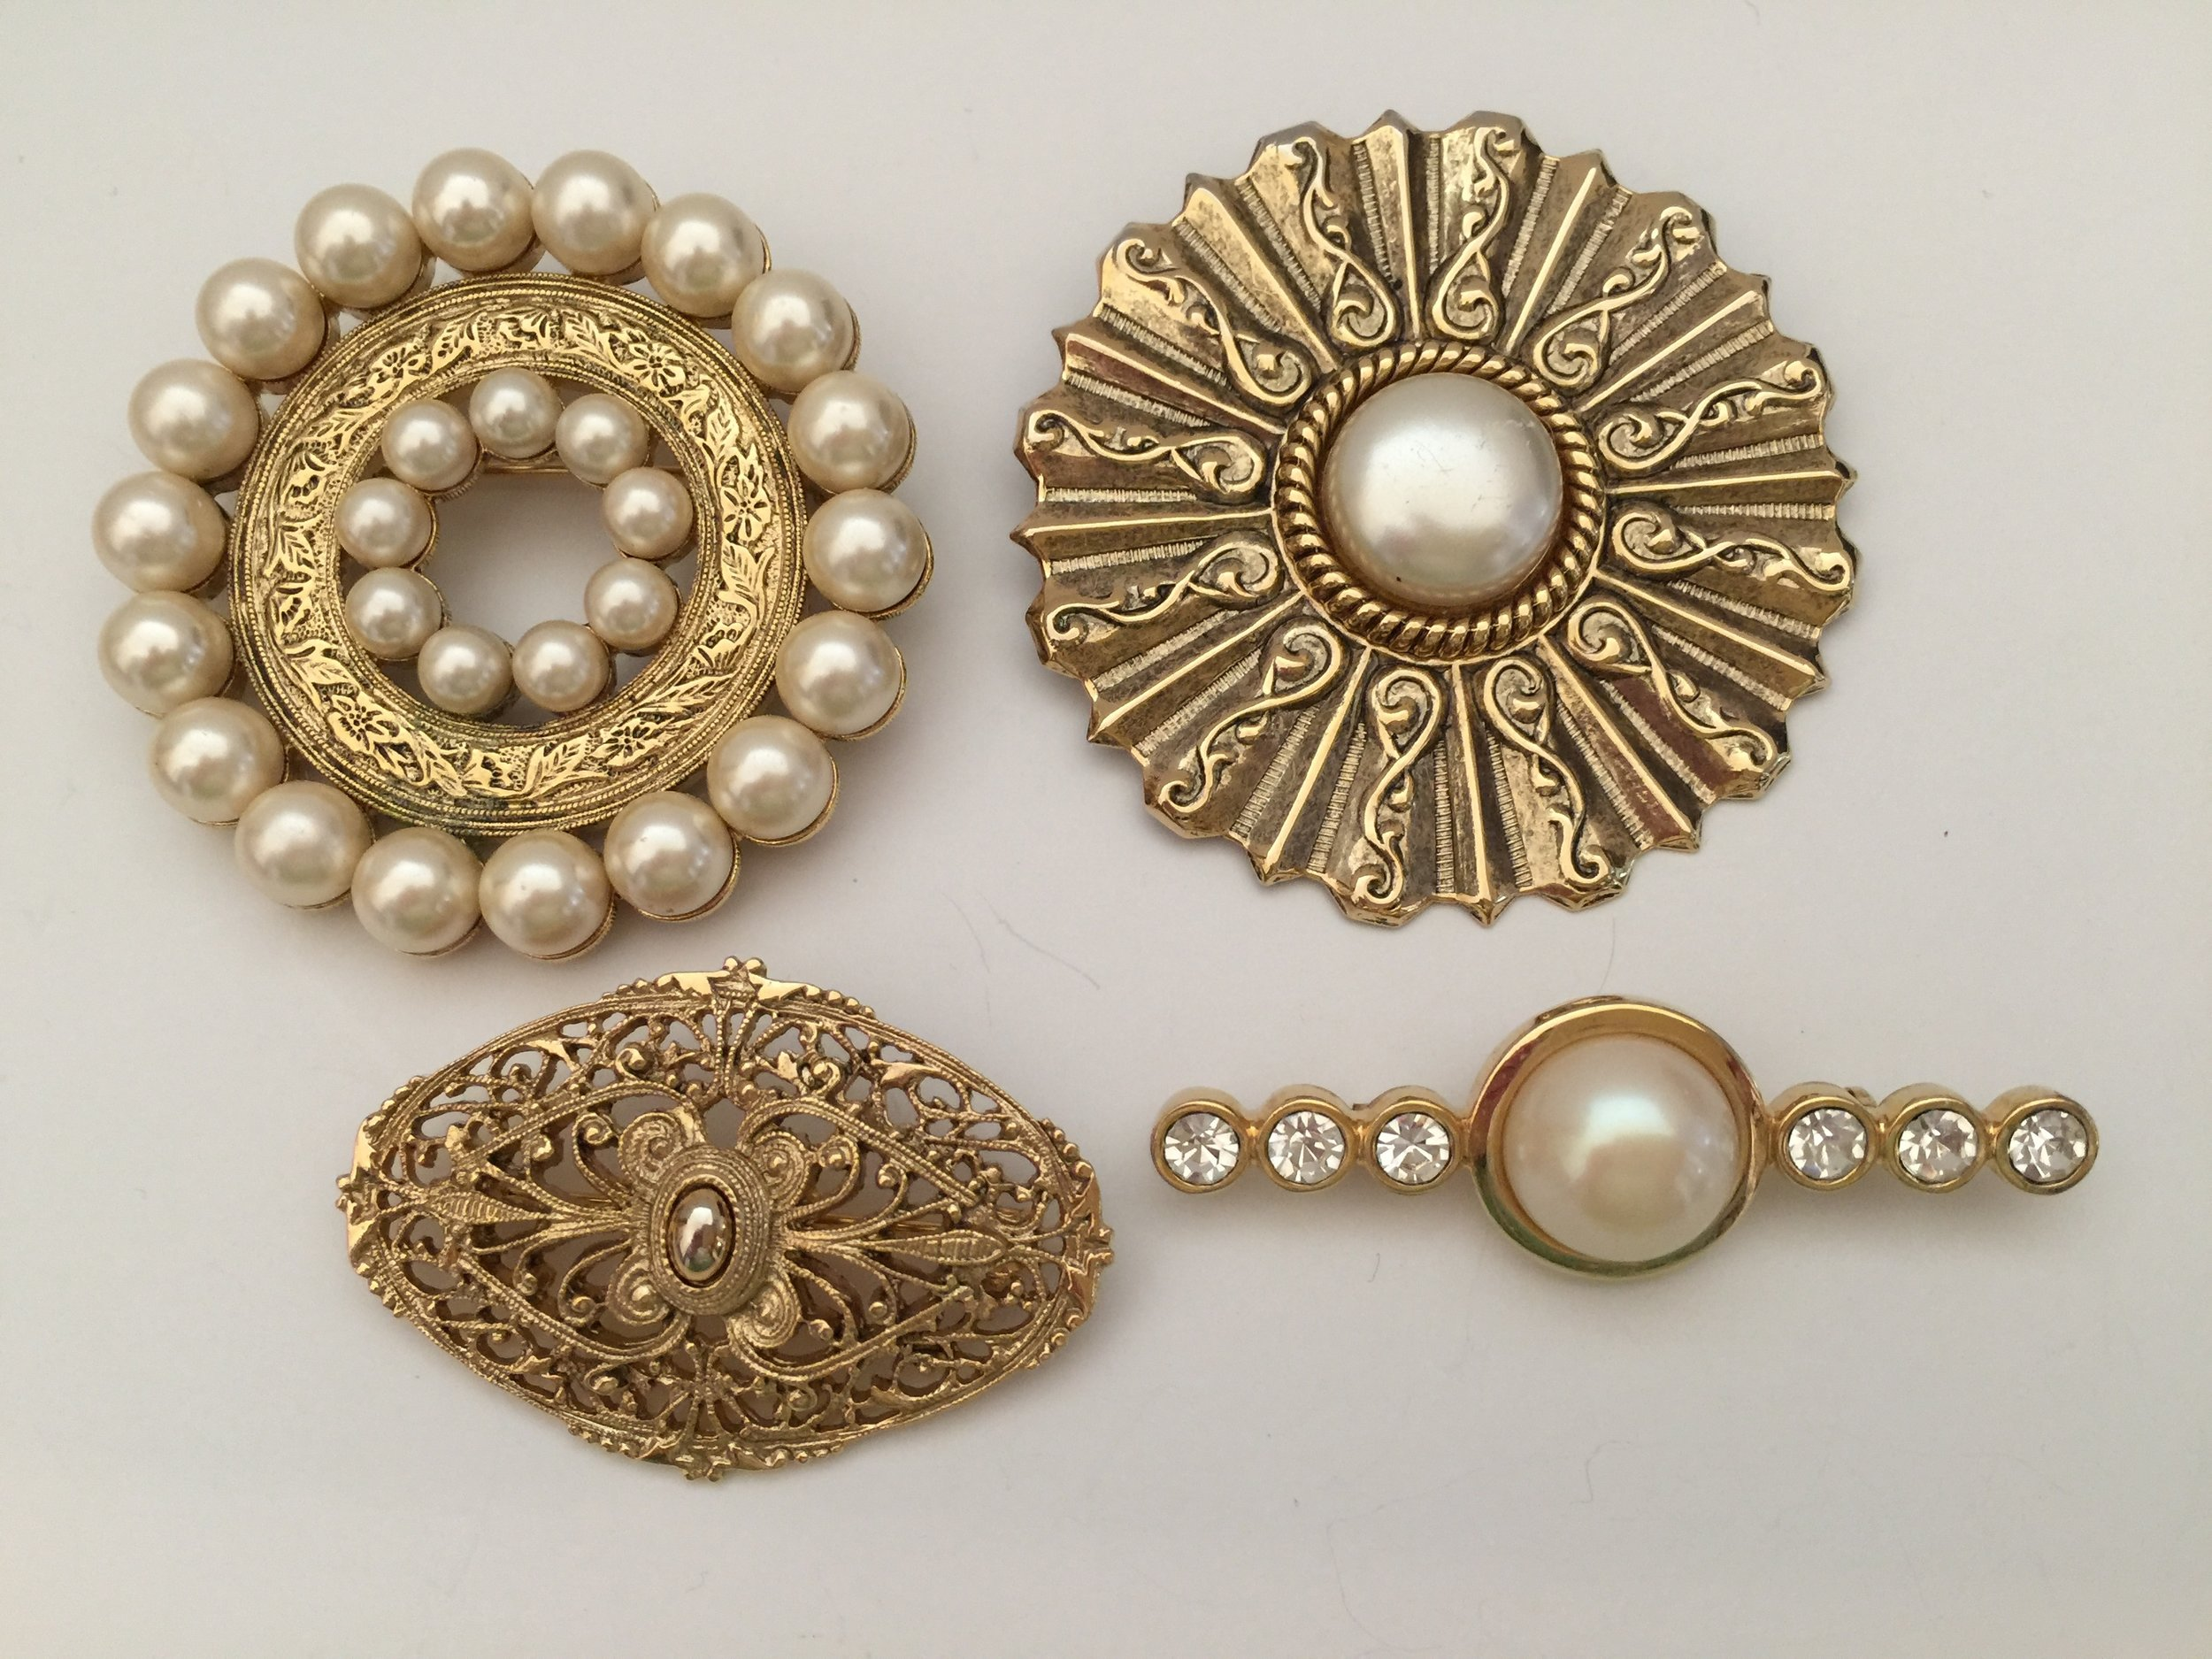 Pearl and gold 1928 pins